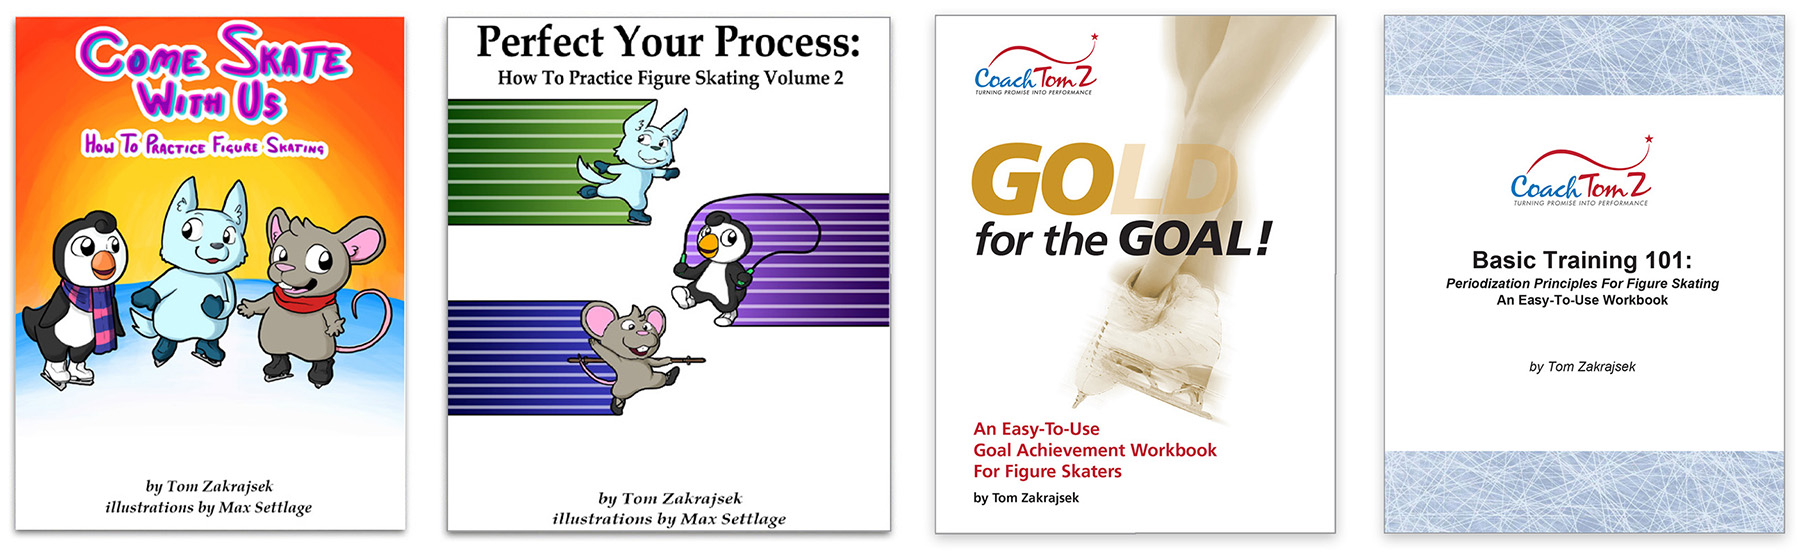 Coach Tom Z Figure Skating Training E-Books